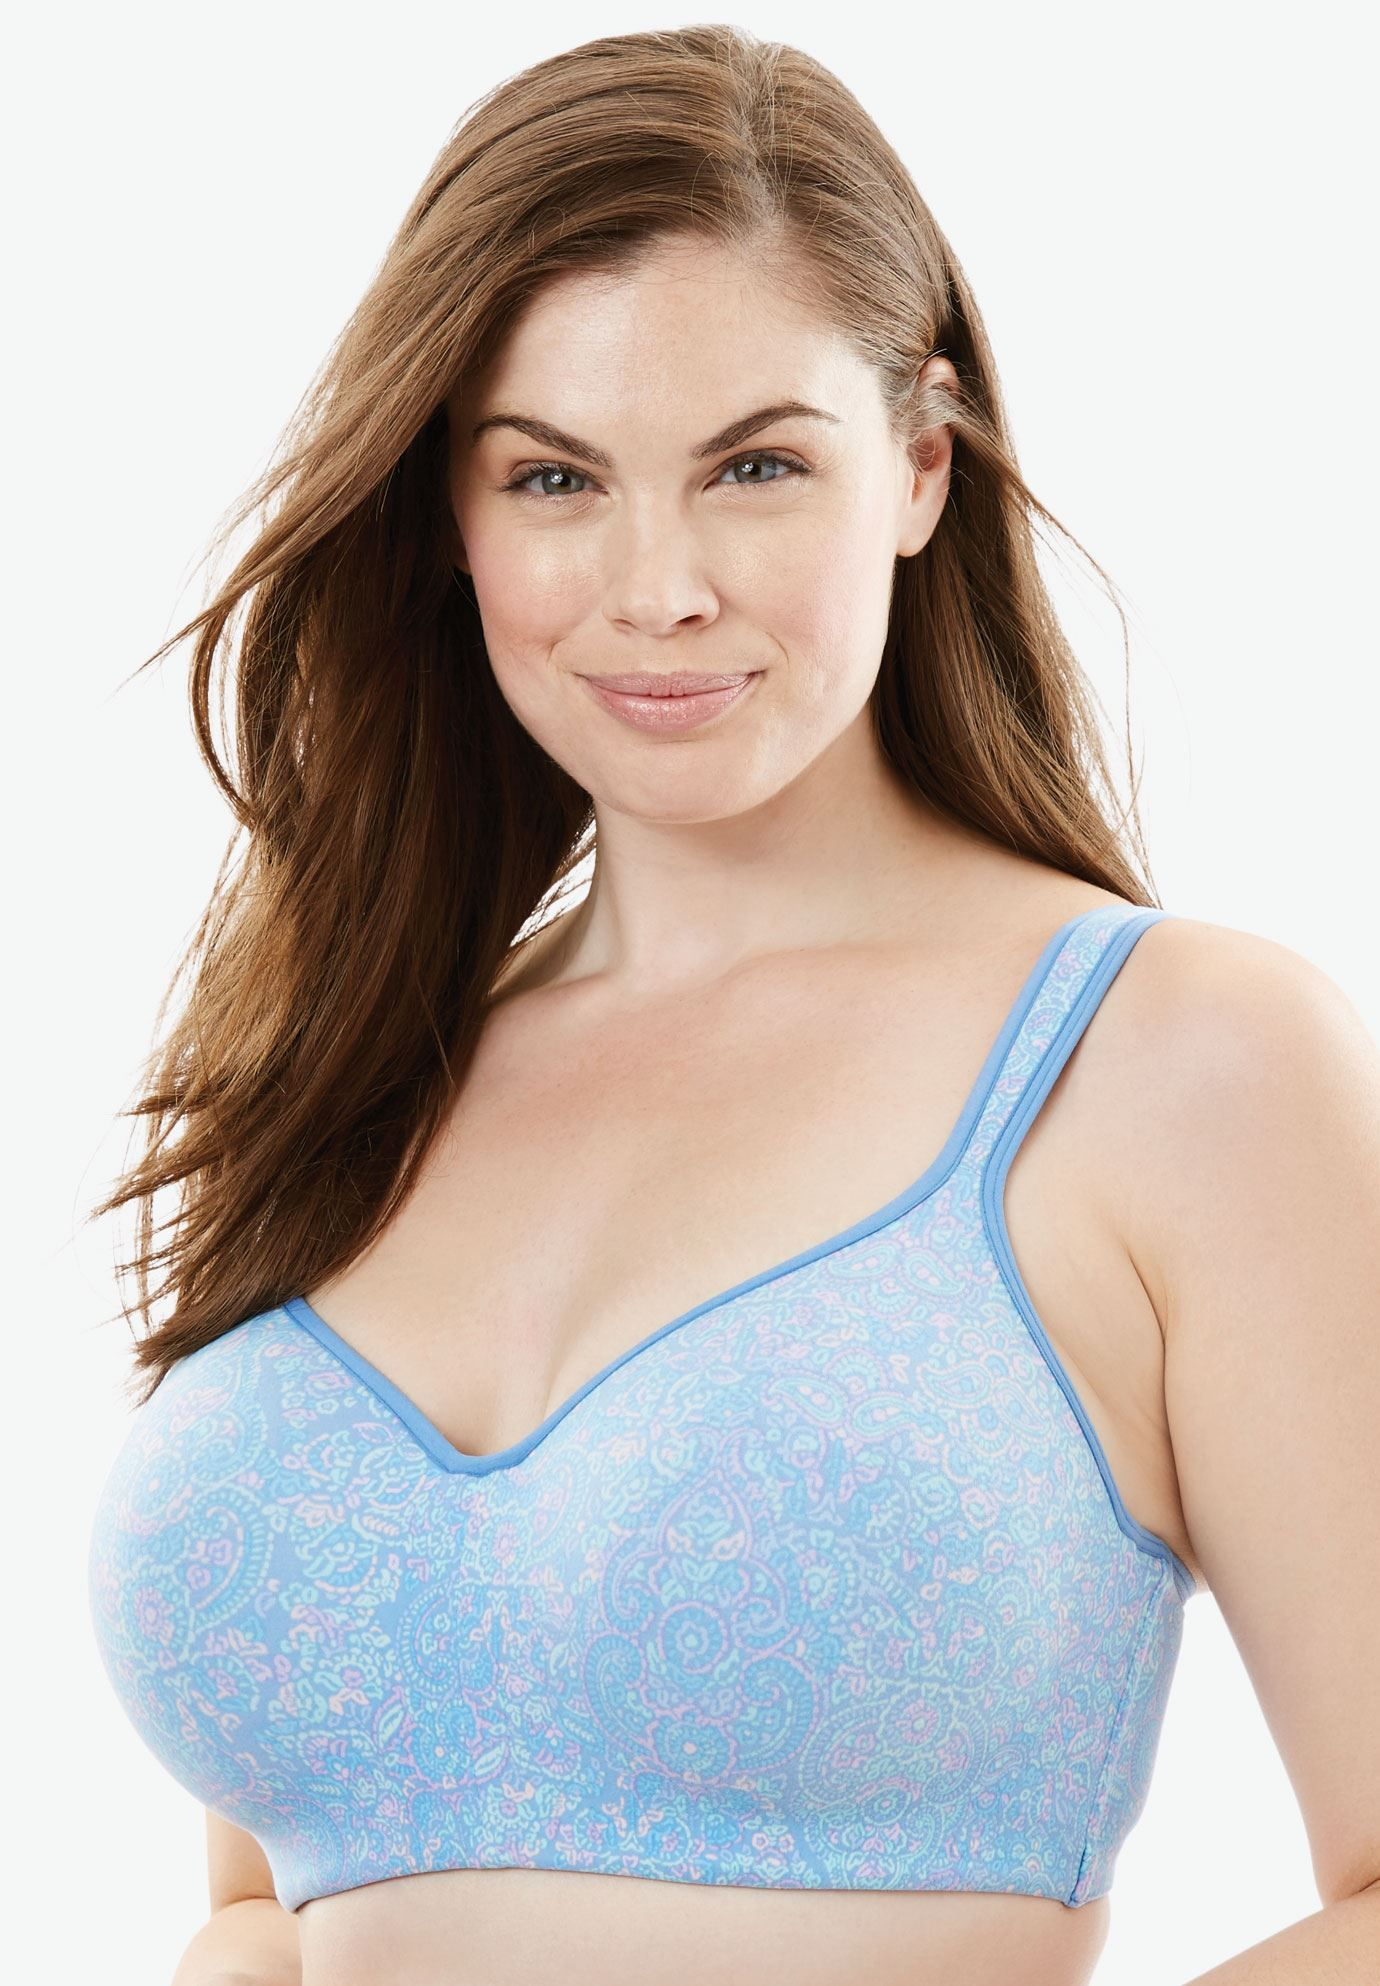 906c4e963b2 Flex Wire Tee Bra by Comfort Choice - Women s Plus Size Clothing ...